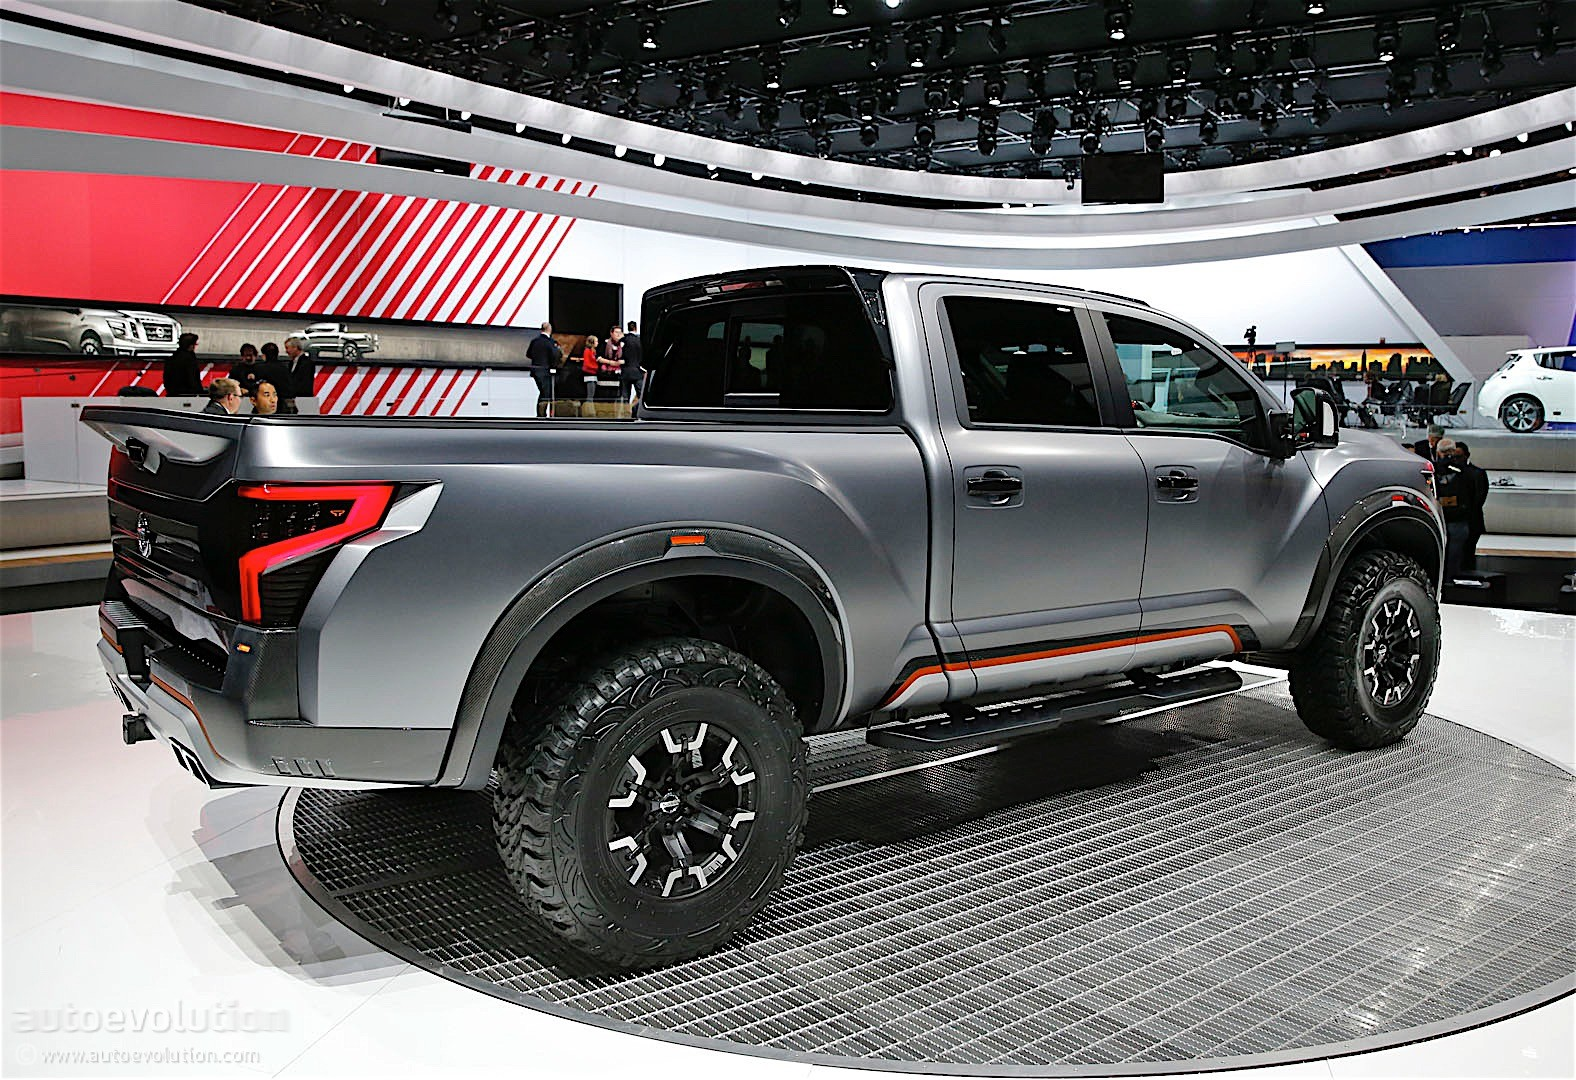 Wonderful Nissan Titan Warrior Concept Debuts In Detroit With Loads